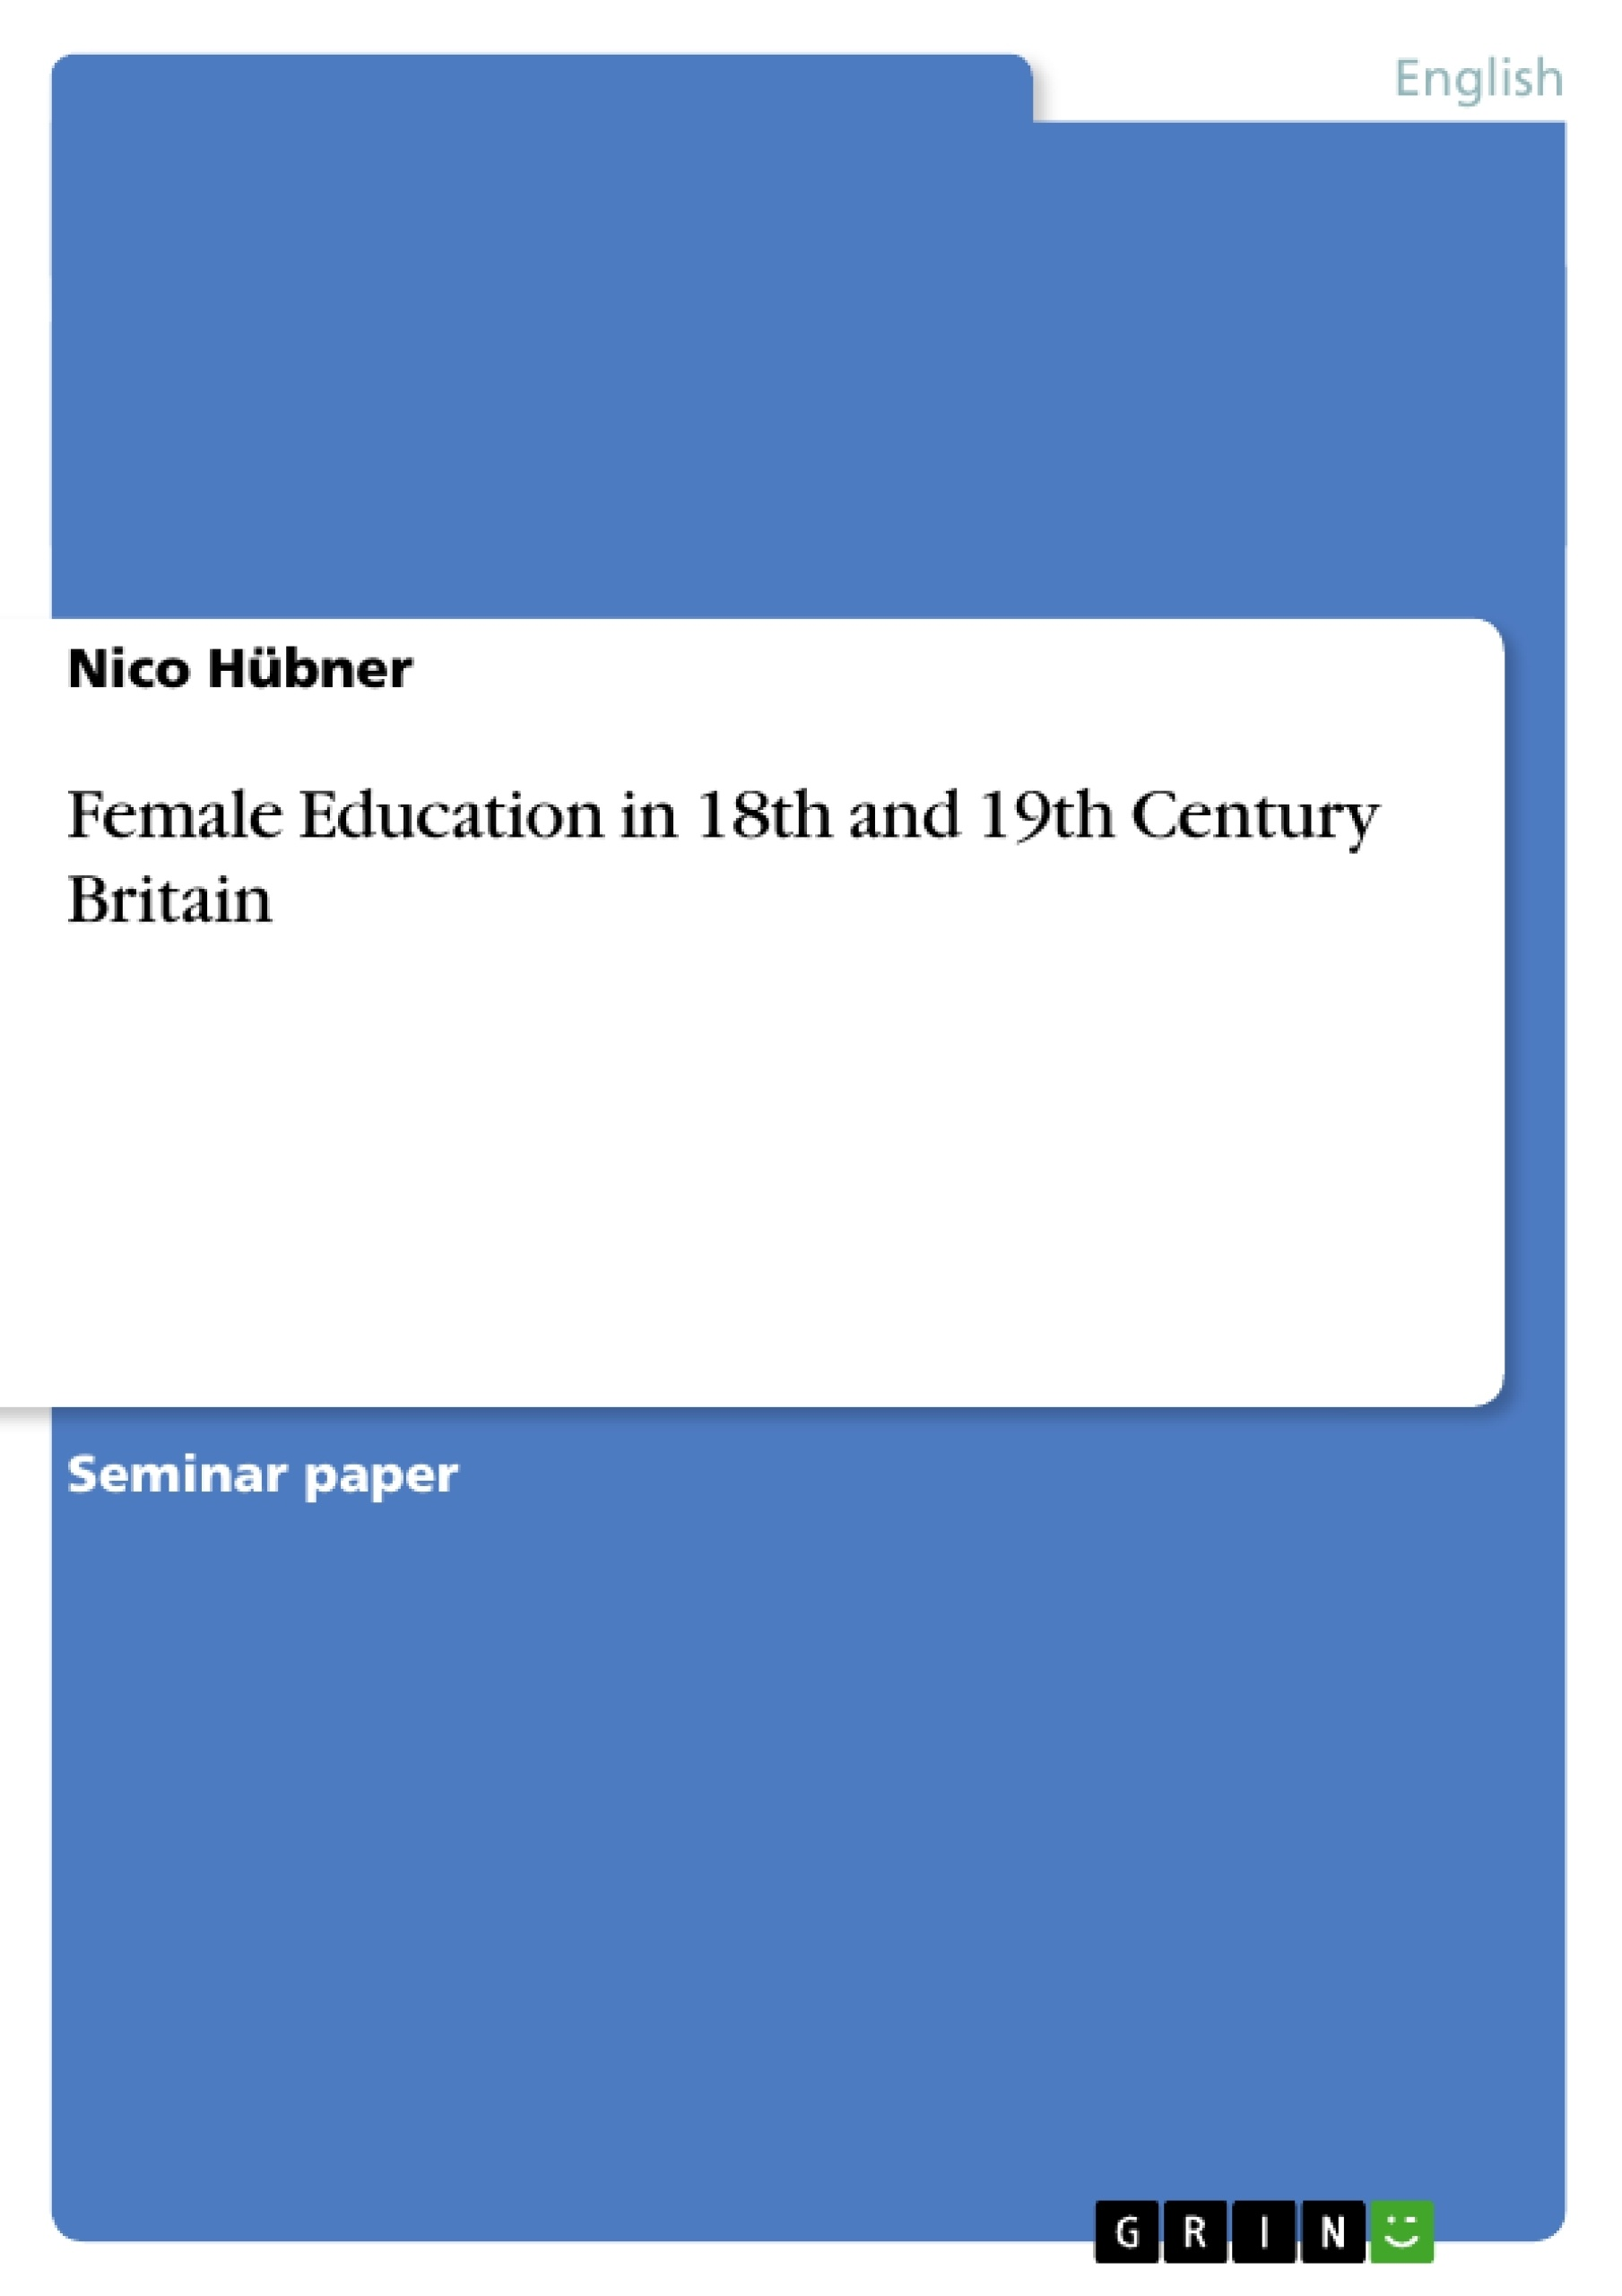 th century essays female education in th and th century britain  female education in th and th century britain publish your female education in 18th and 19th